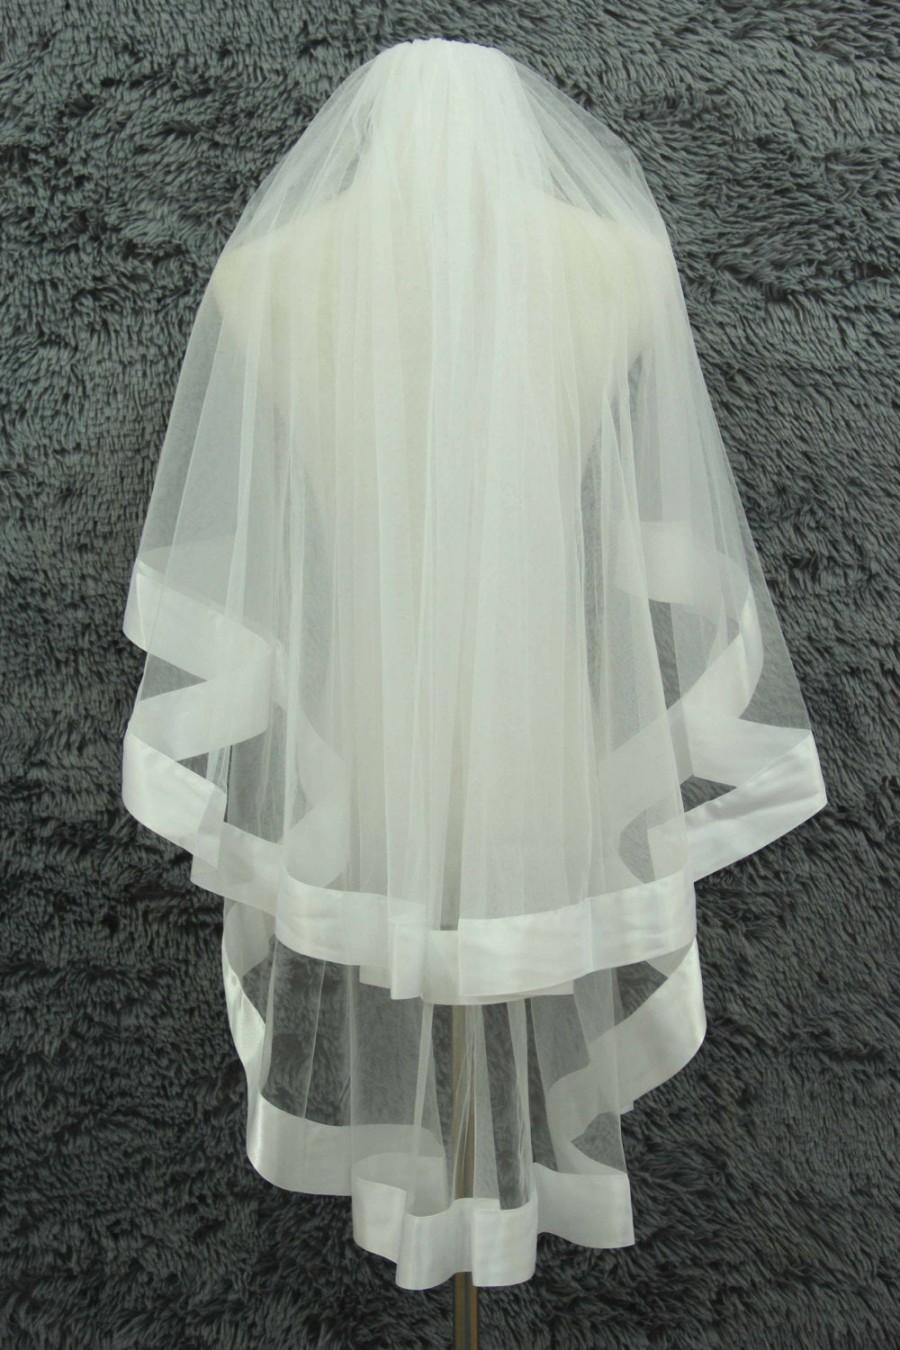 Mariage - Blush veil,Satin edge Veil,Bridal veil,2 Tier veil,wedding dress veil,white Ivory,Fingertip length veil,With comb